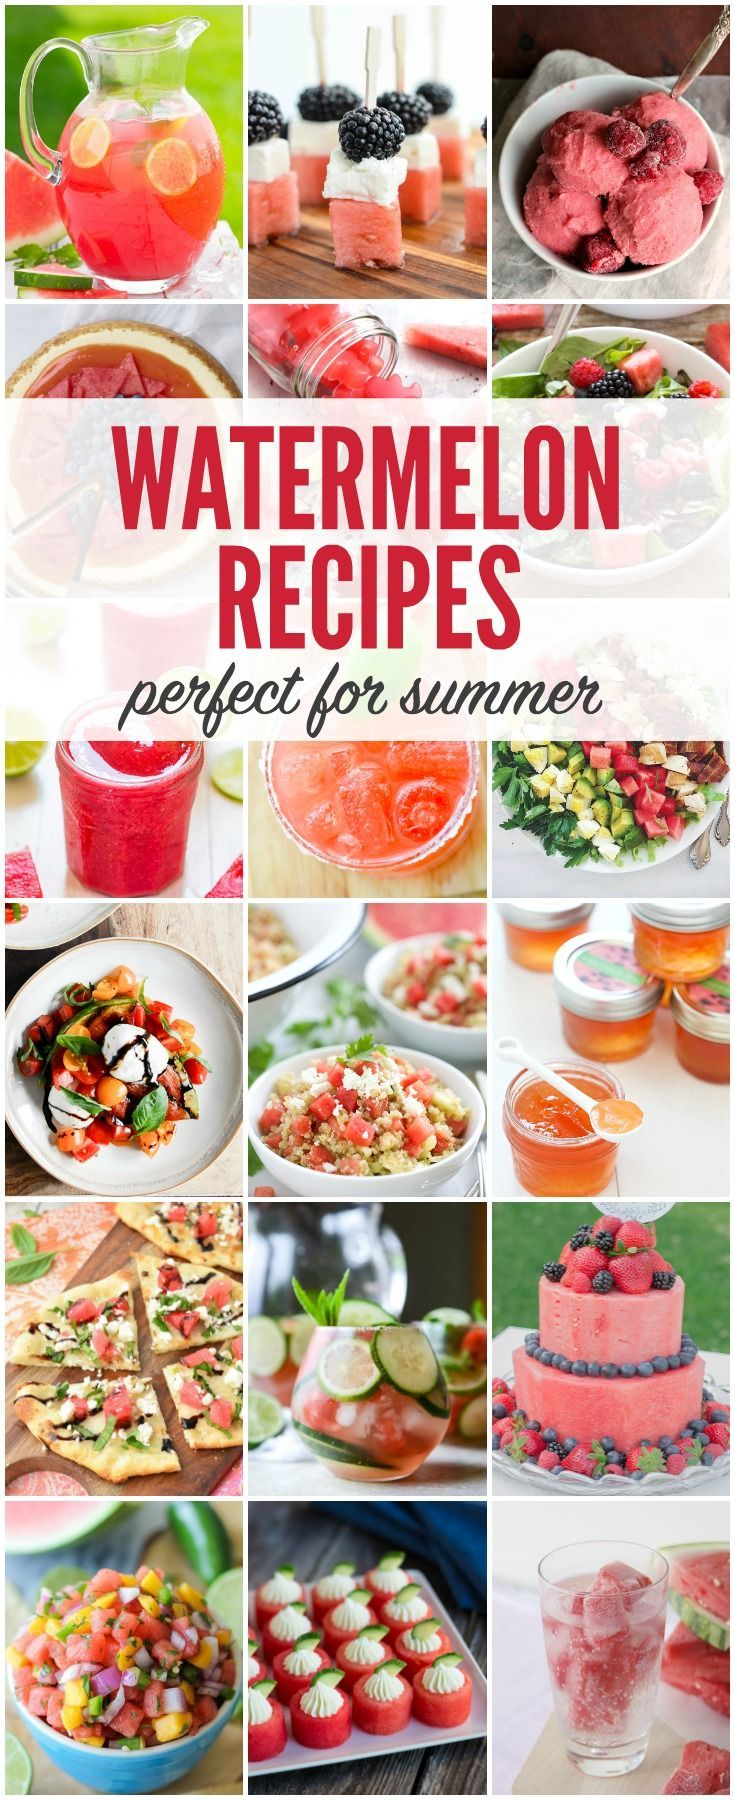 Transform your watermelon into something extraordinary with one of these watermelon recipes. So many ideas to help you savor every juicy bite!